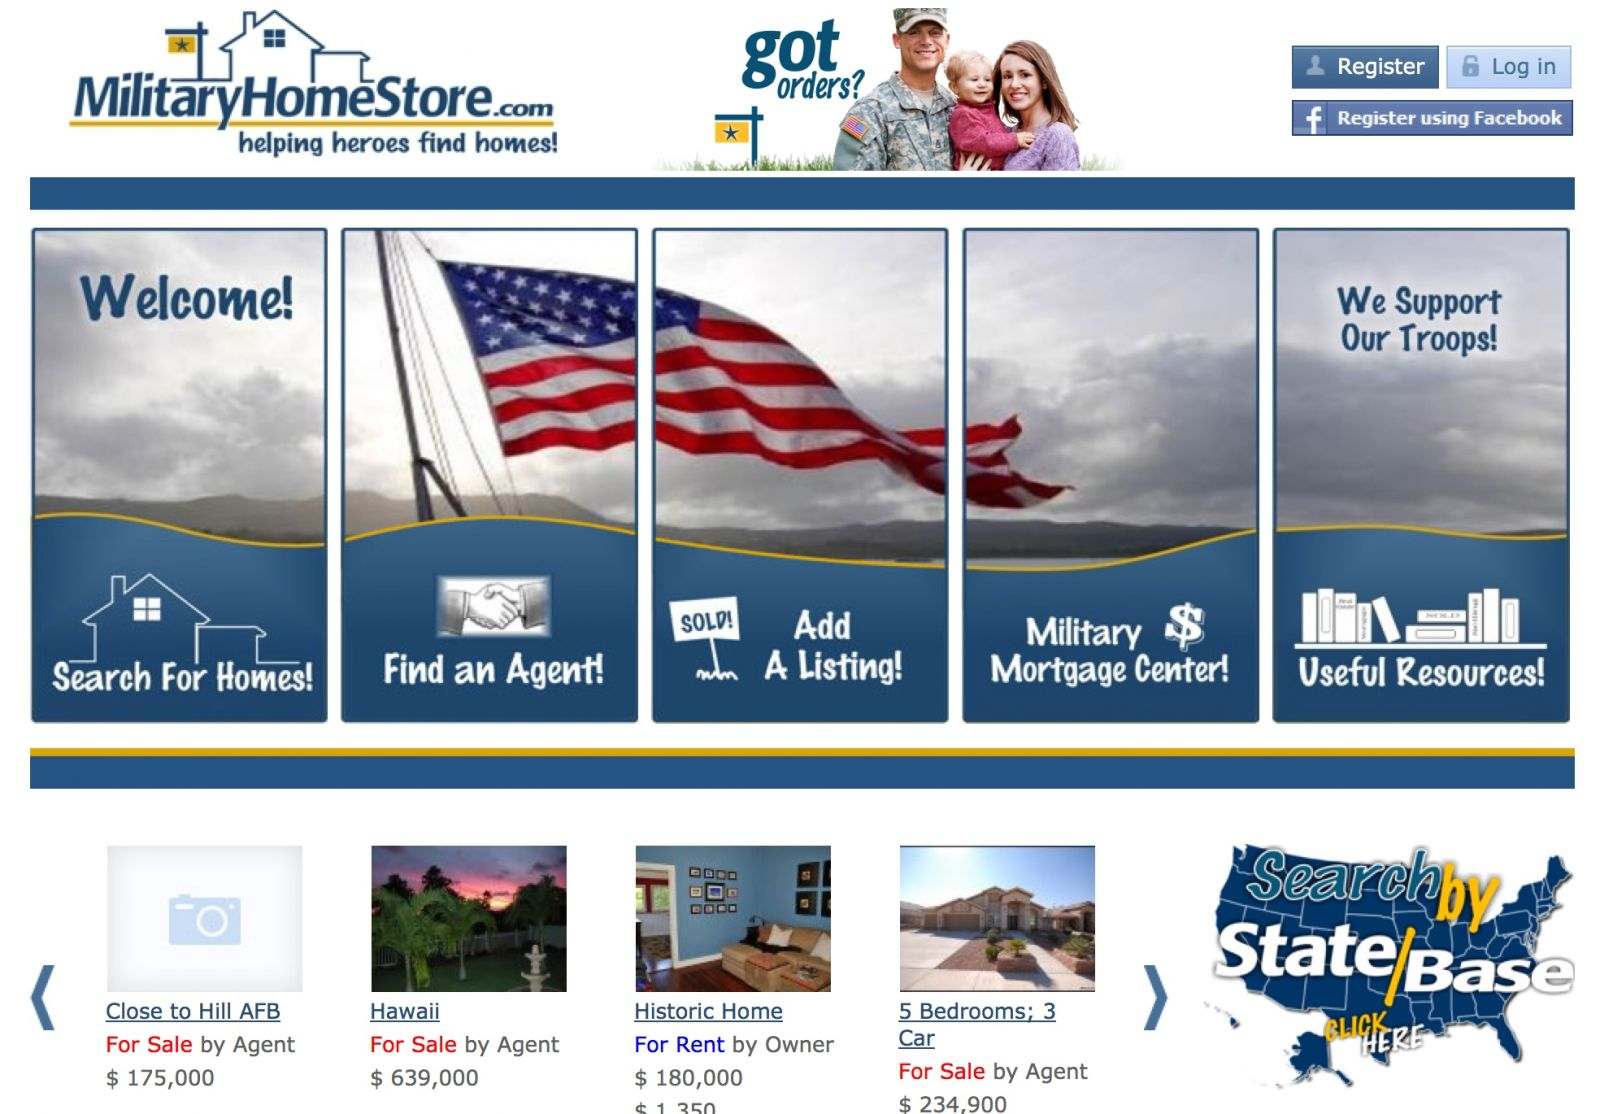 militaryhomestore off base military homes for and rent near militaryhomestore off base military homes for and rent near military bases